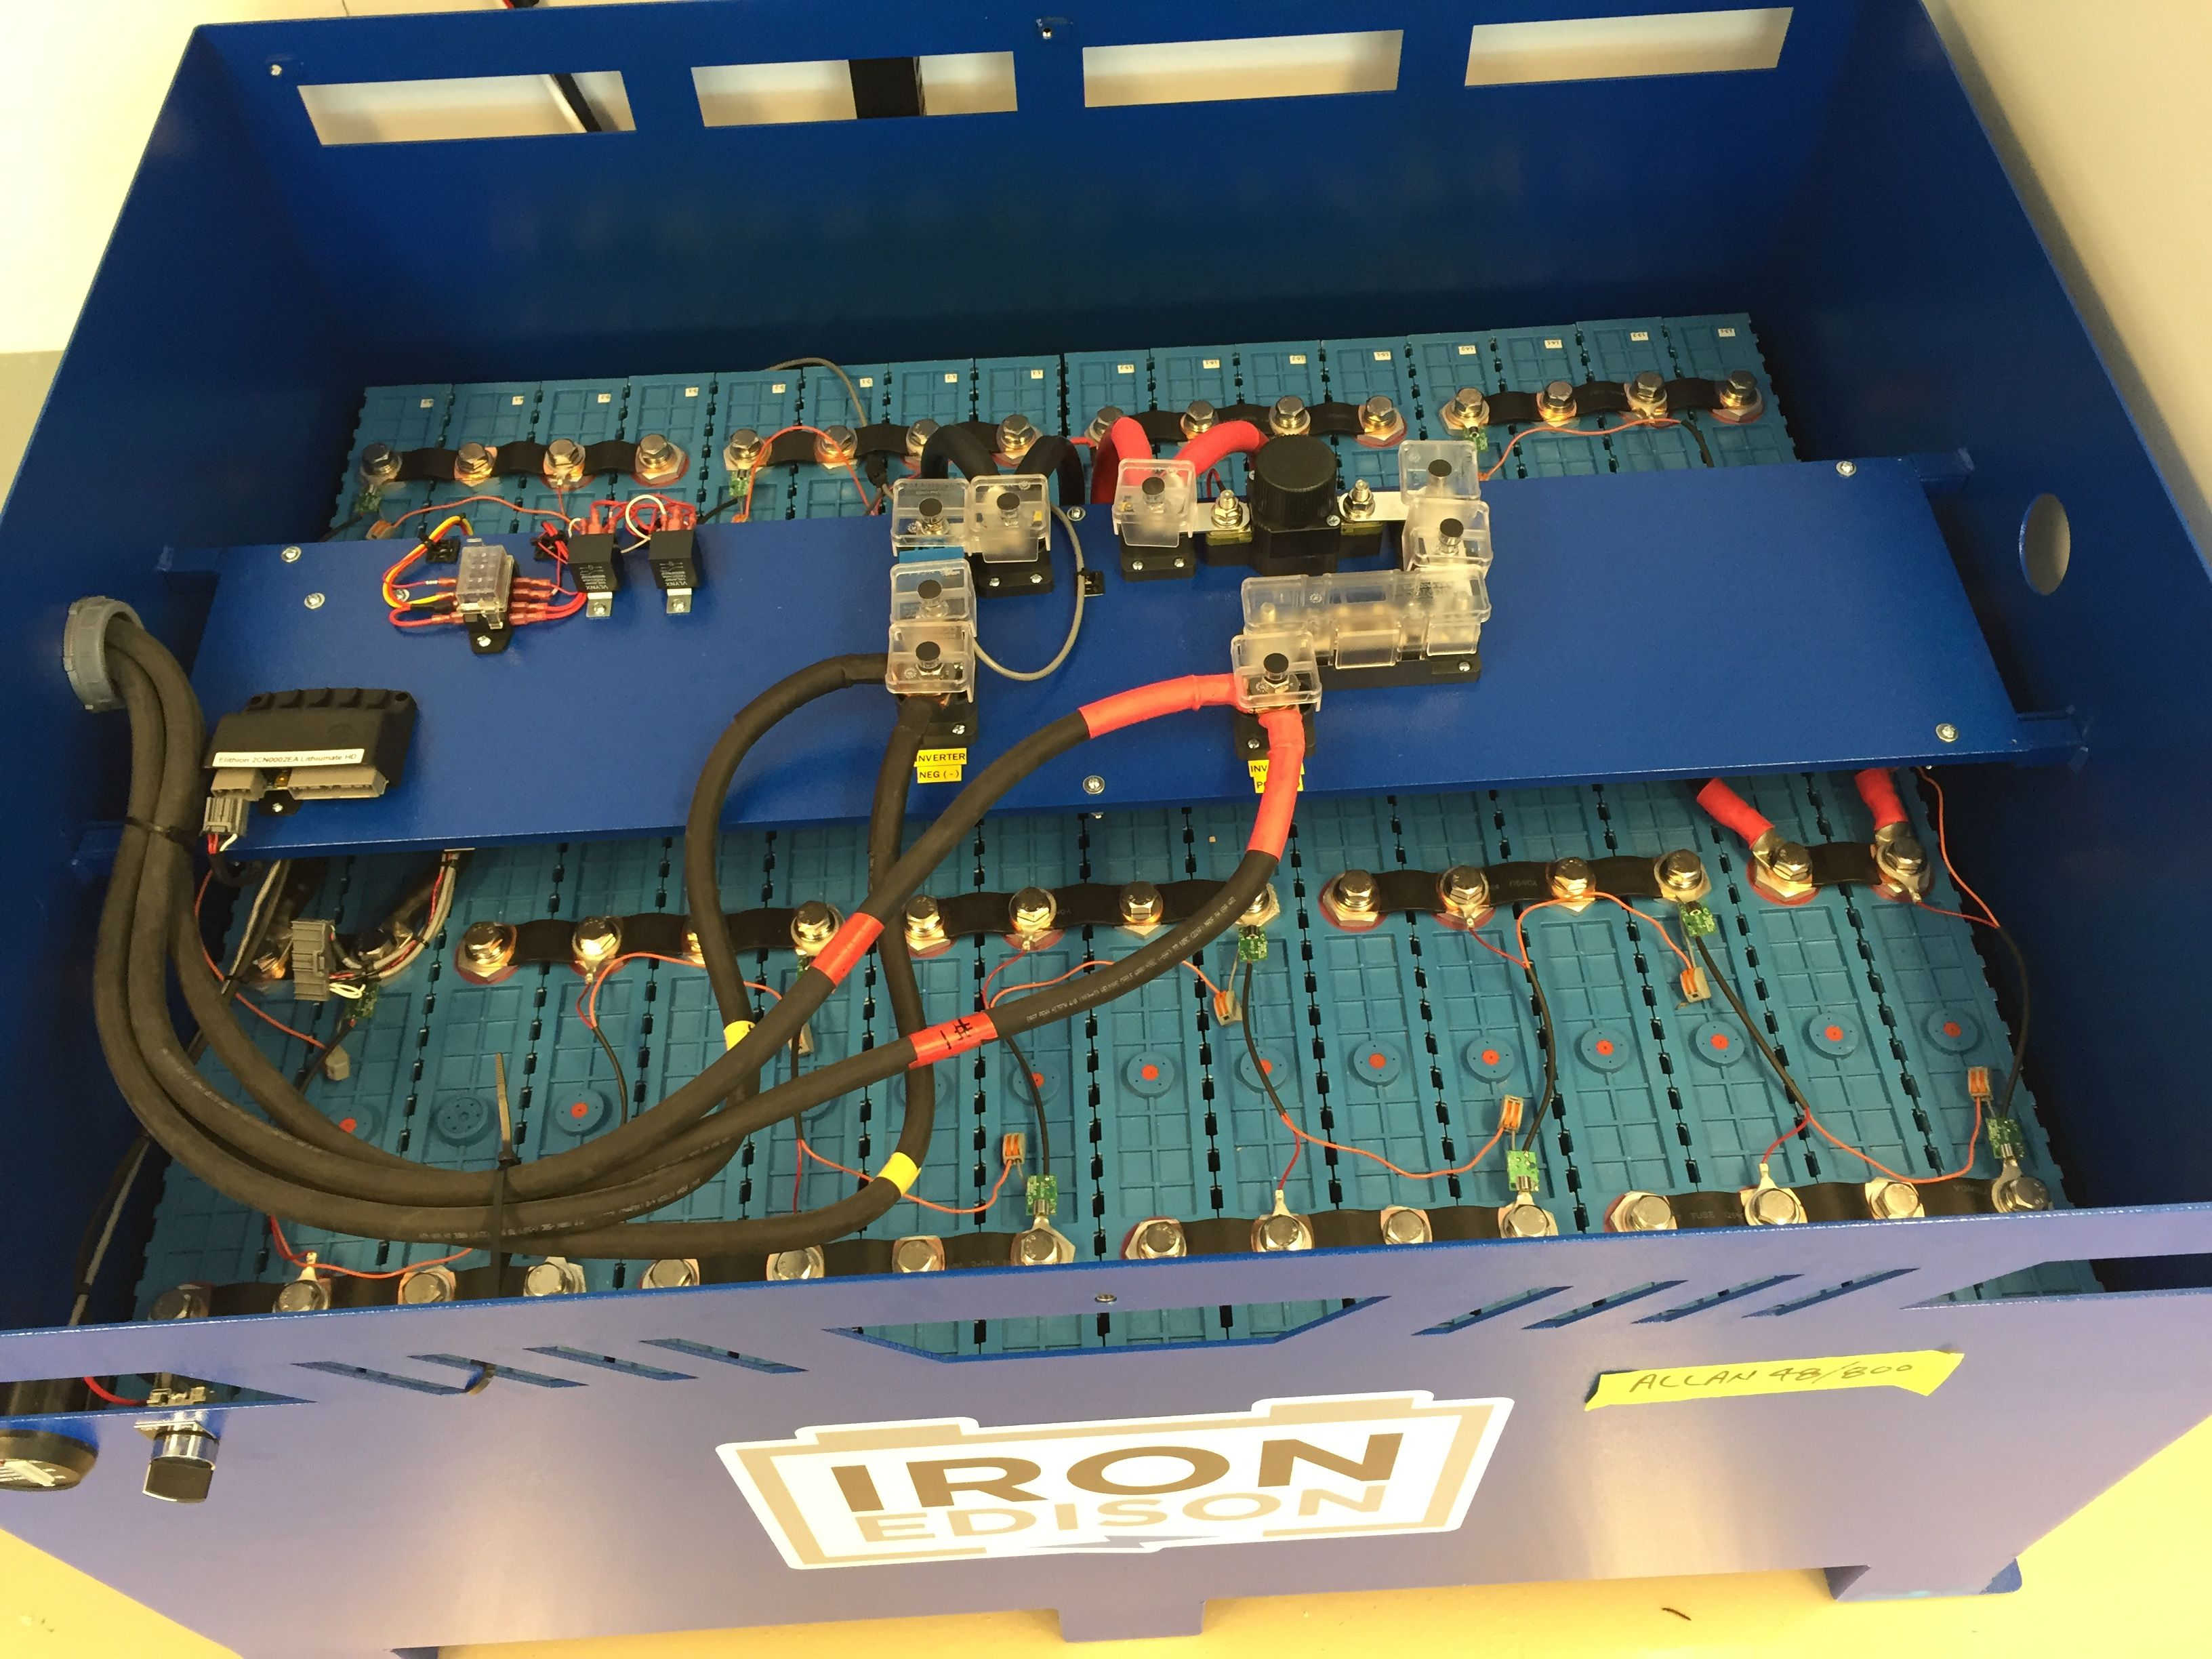 A Peak Under The Lid Of An 800Ah 48V Lithium Iron Battery Reveals